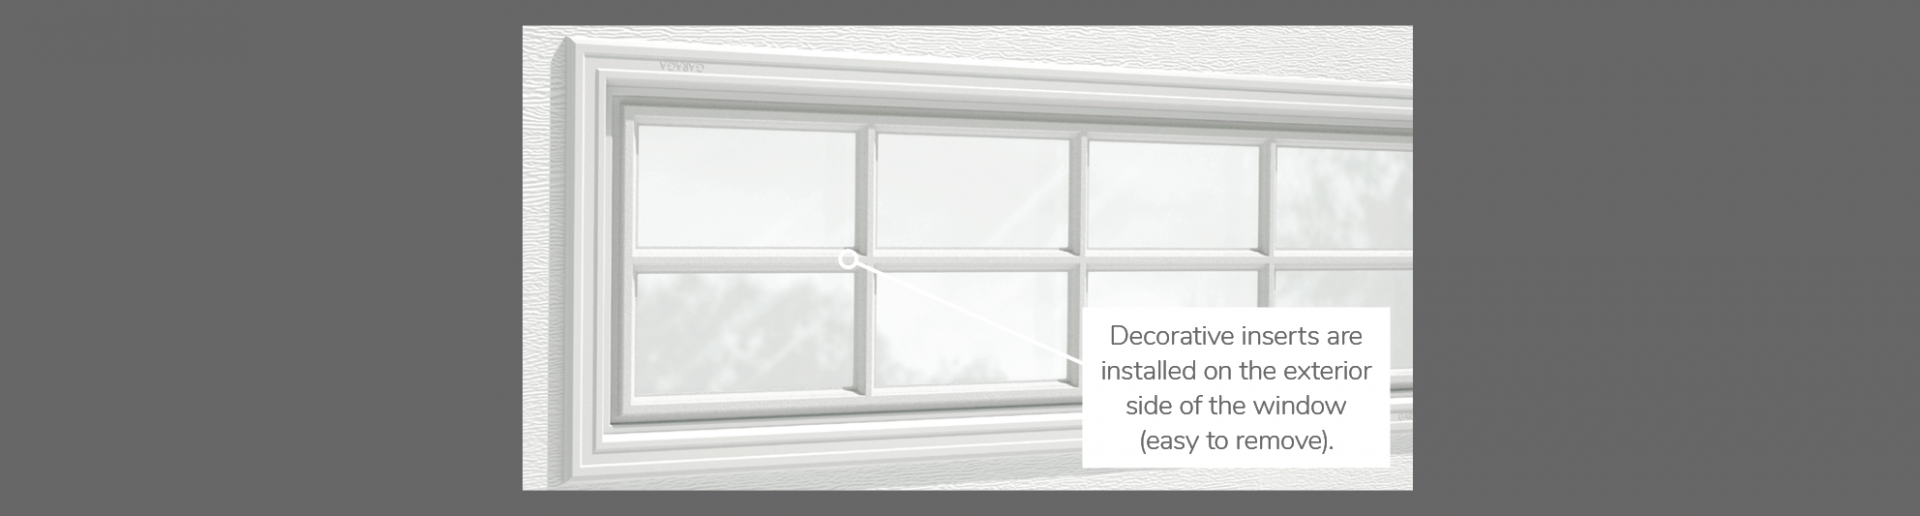 "Stockton Decorative Insert, 40"" x 13"" or 41"" x 16"", available for door R-16, 3 layers - Polystyrene, 2 layers - Polystyrene and Non-insulated"